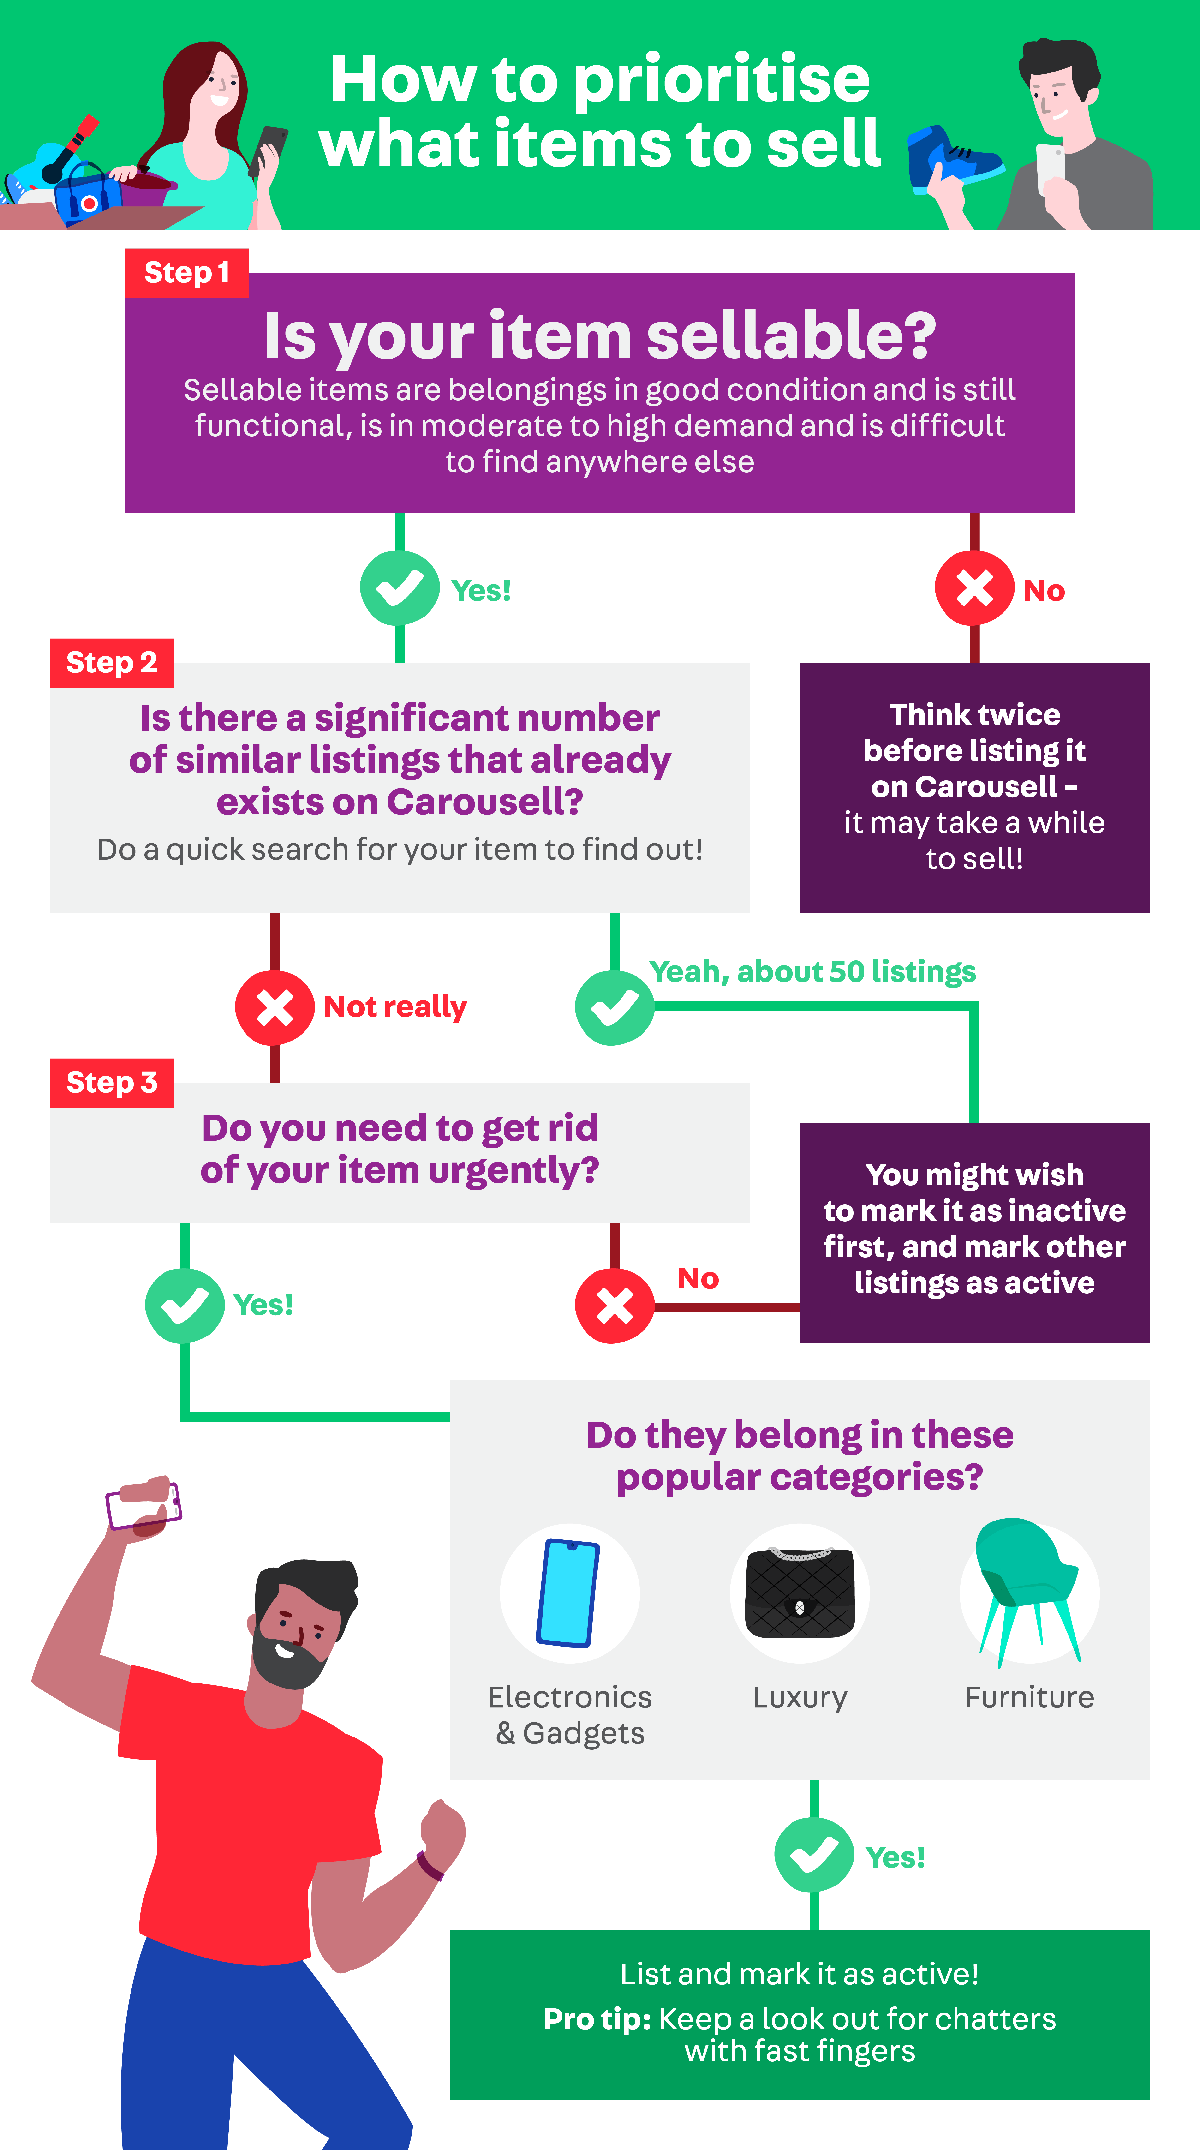 How to decide what to sell on Carousell - Carousell LIsting Quota